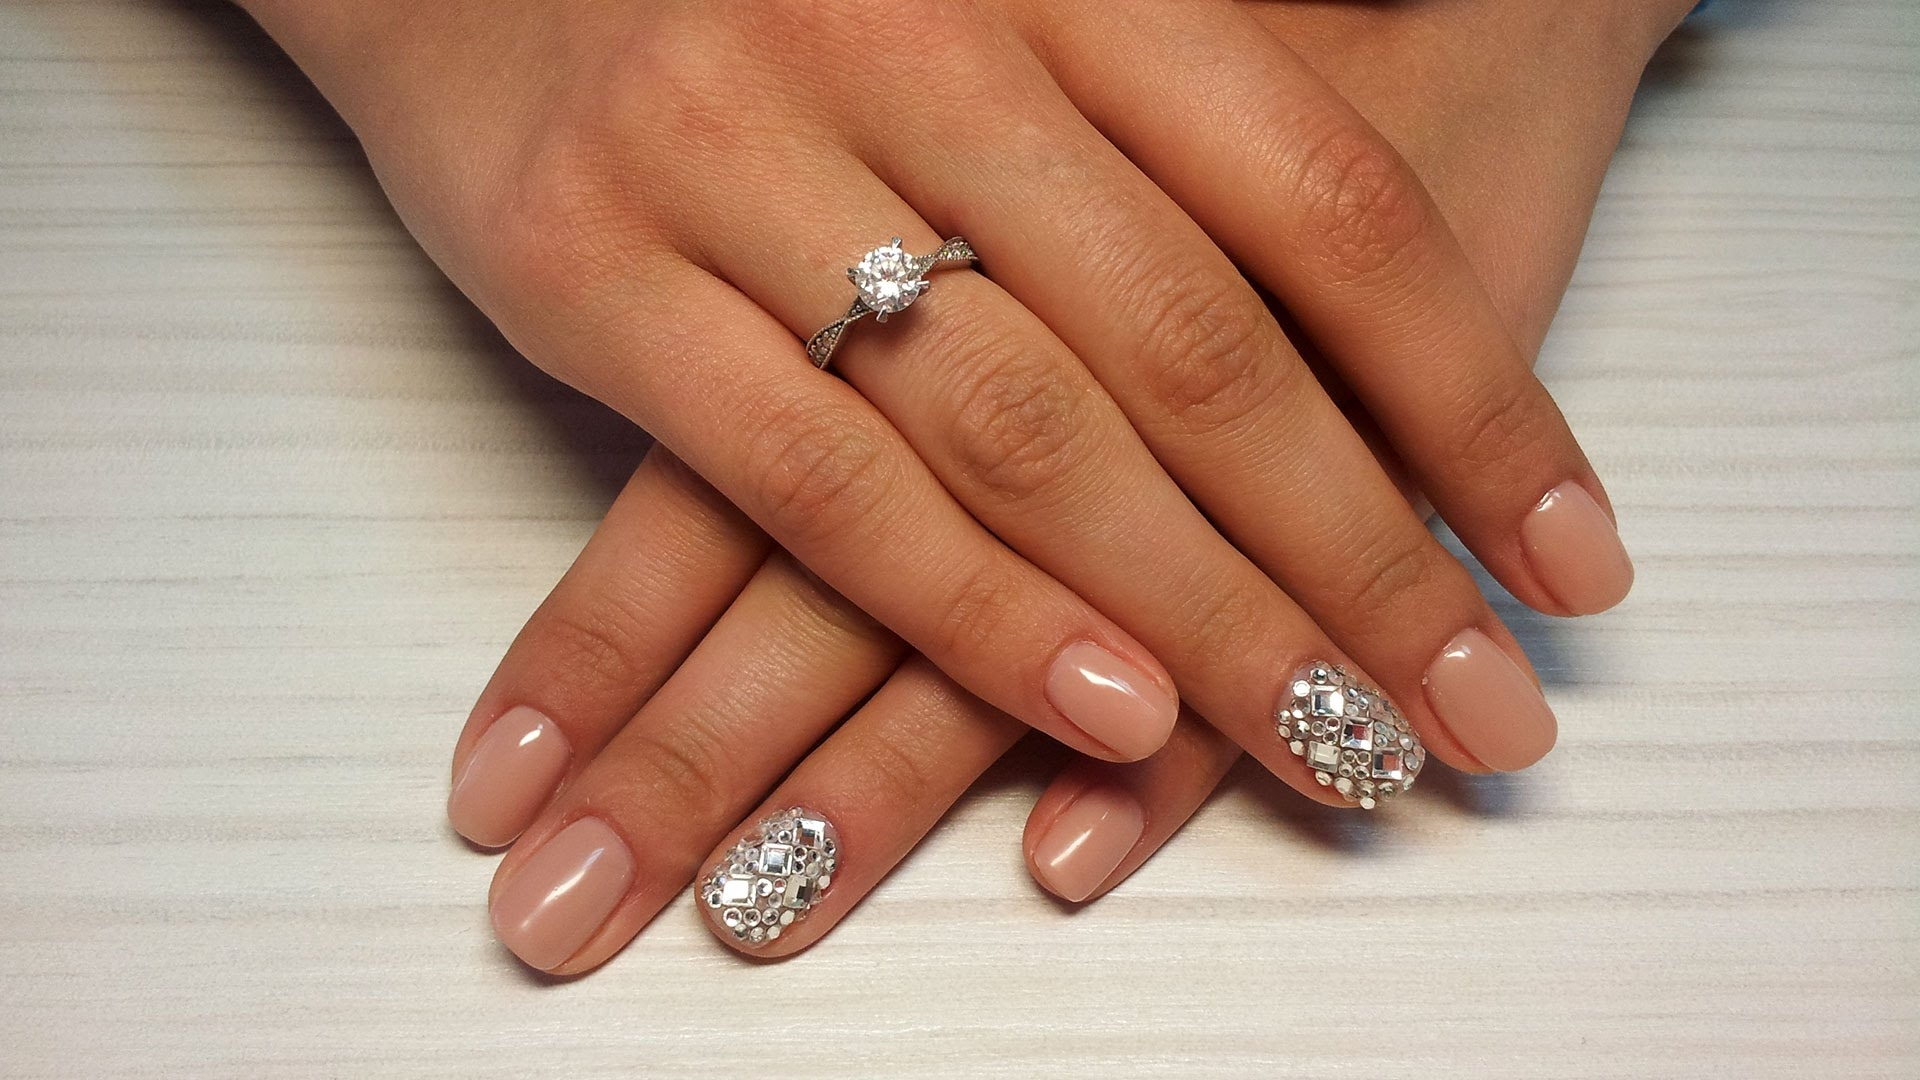 How to glue rhinestone on gel polish?